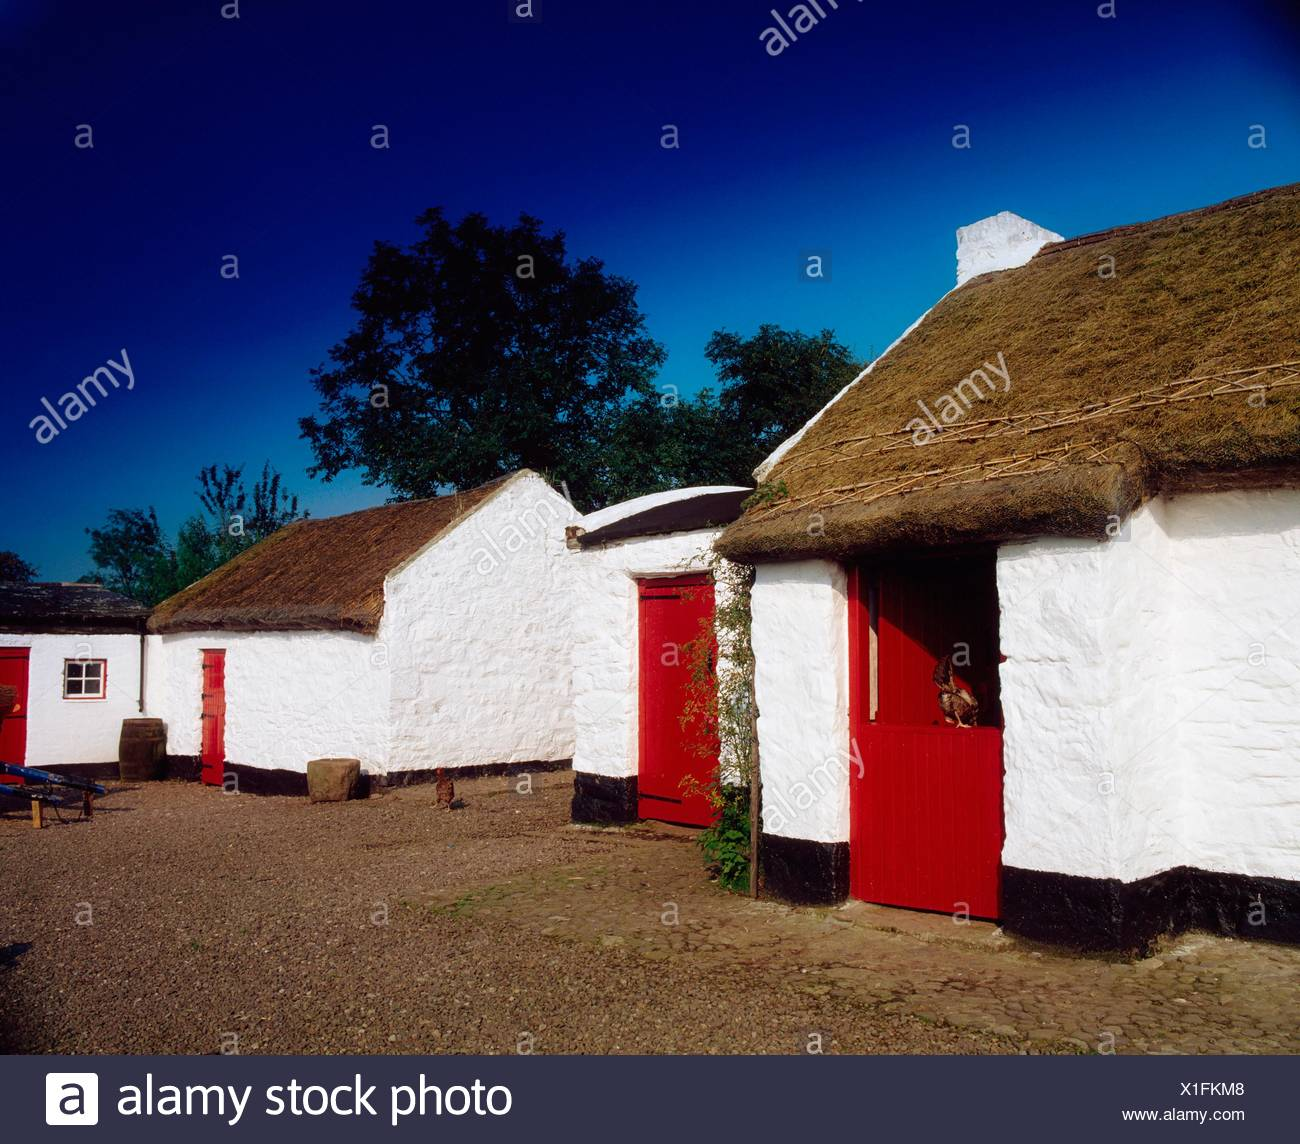 Grant Ancestral Home, Co Tyrone, Ireland; Homestead Of The Family Of Ulysses Simpson Grant - Stock Image